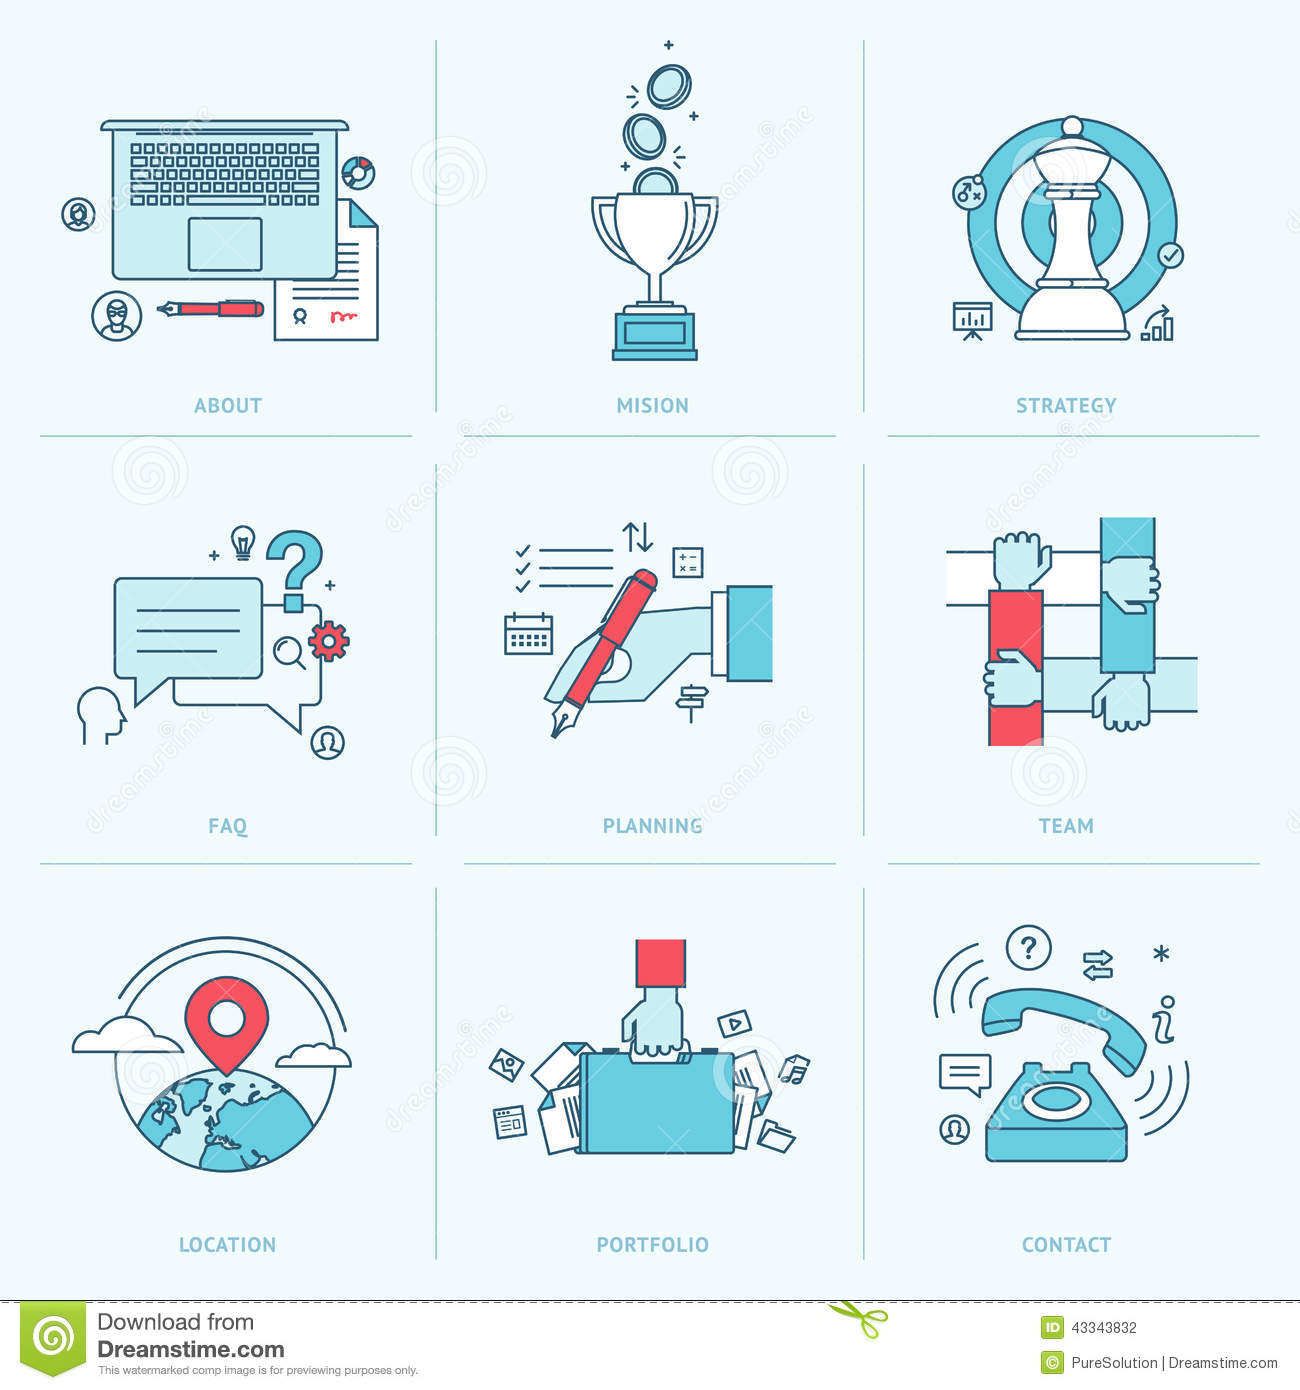 genting group organization strategy The genting group is the collective name for genting berhad and strategy full management assignment 40 company background genting highlands genting highlands overview assignment entrepreneur great success genting group background swot analysis of genting malaysia berhad (1.